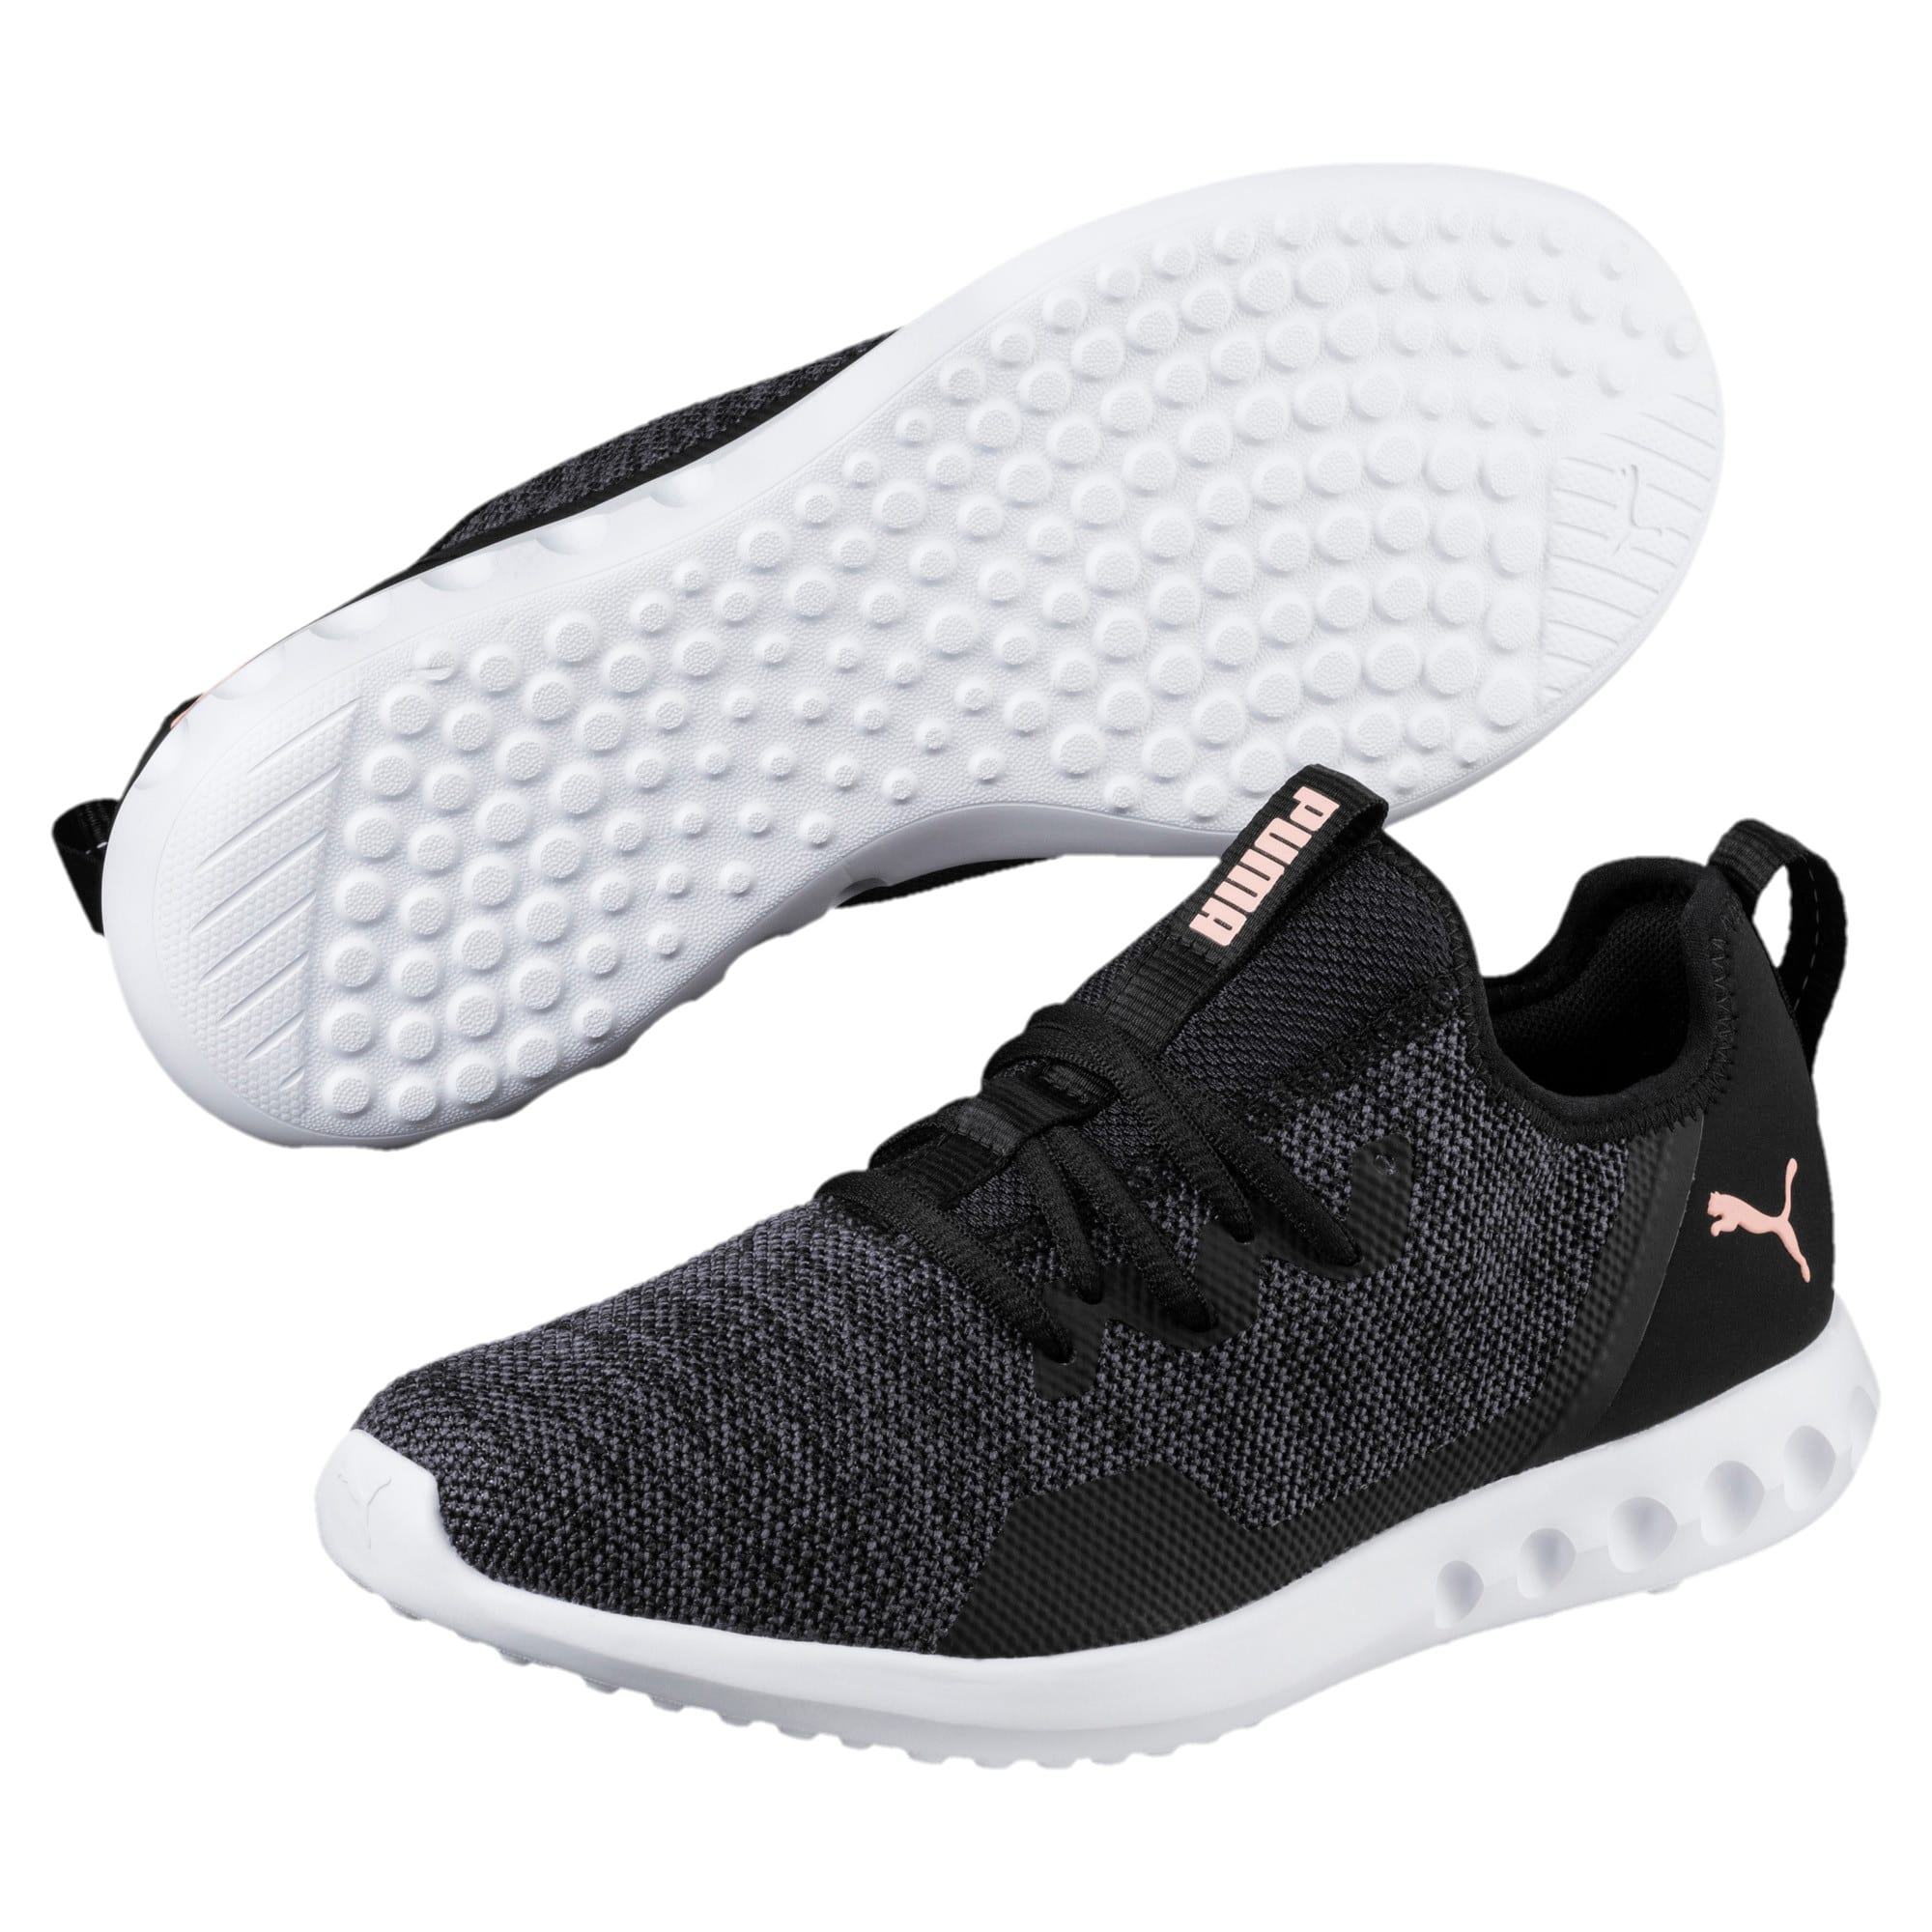 Thumbnail 2 of Carson 2 X Knit Women's Running Shoes, Puma Black-Periscope, medium